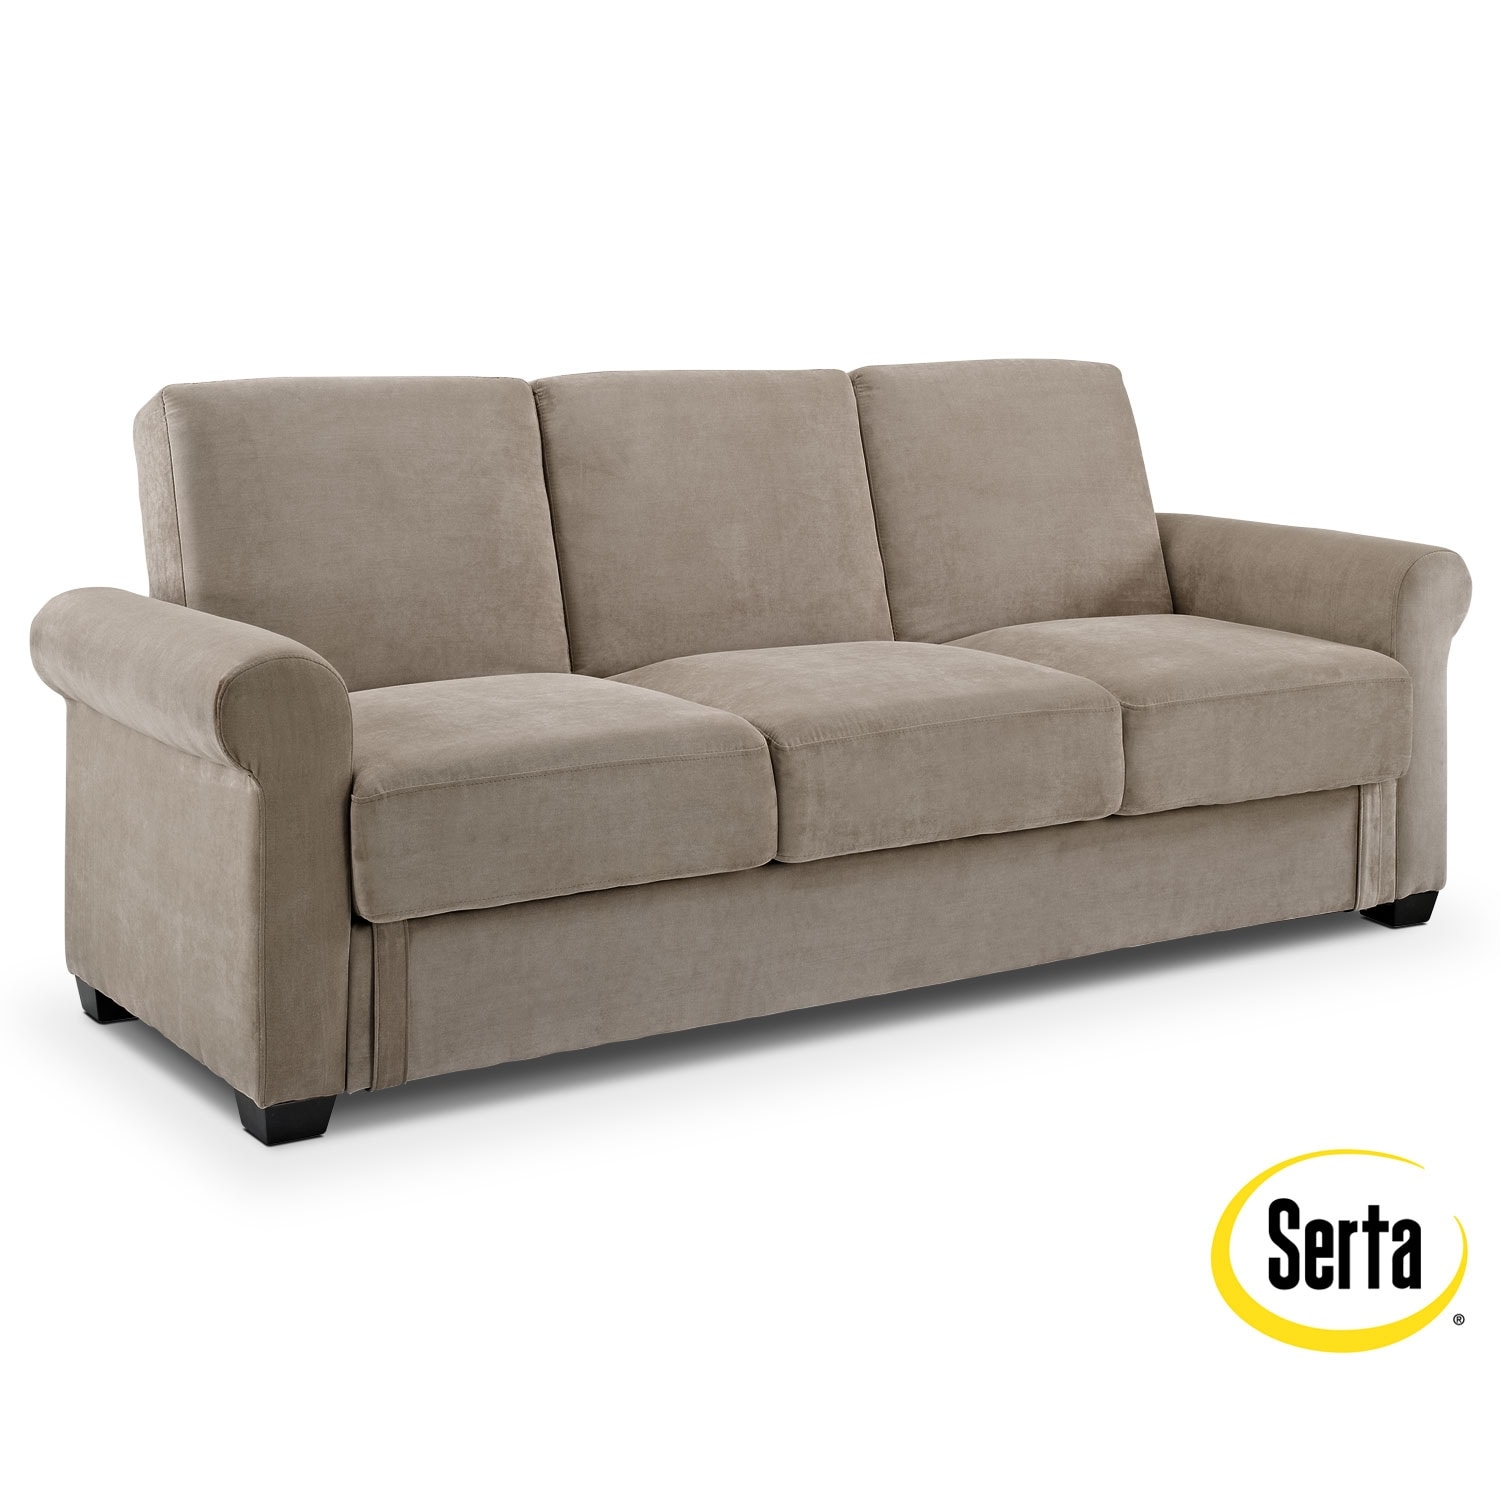 Thomas upholstery futon sofa bed with storage american for Sofa 99 euro